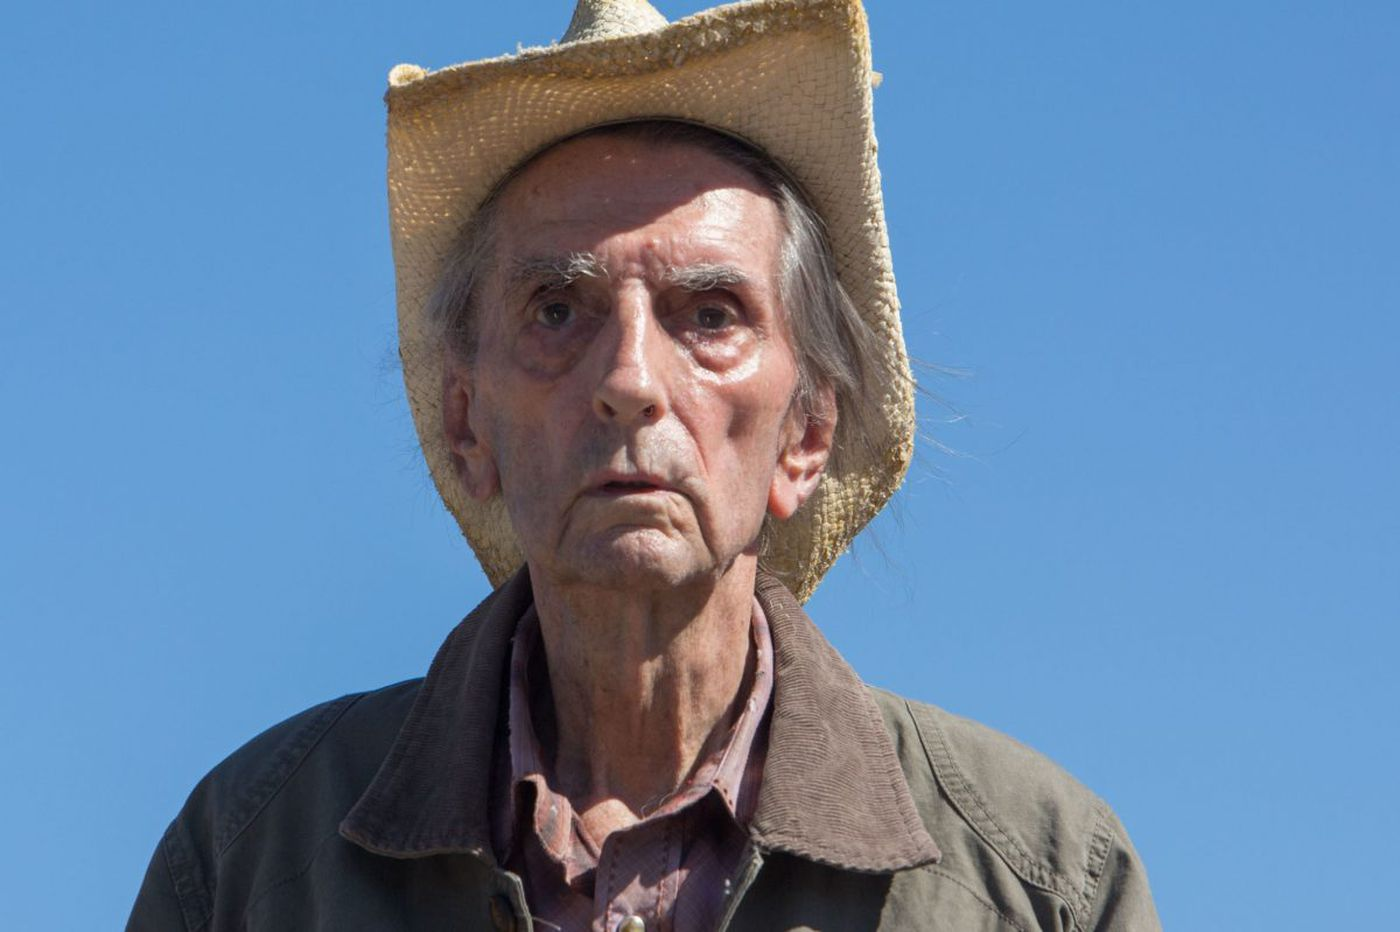 'Lucky' a fitting eulogy for actor Harry Dean Stanton